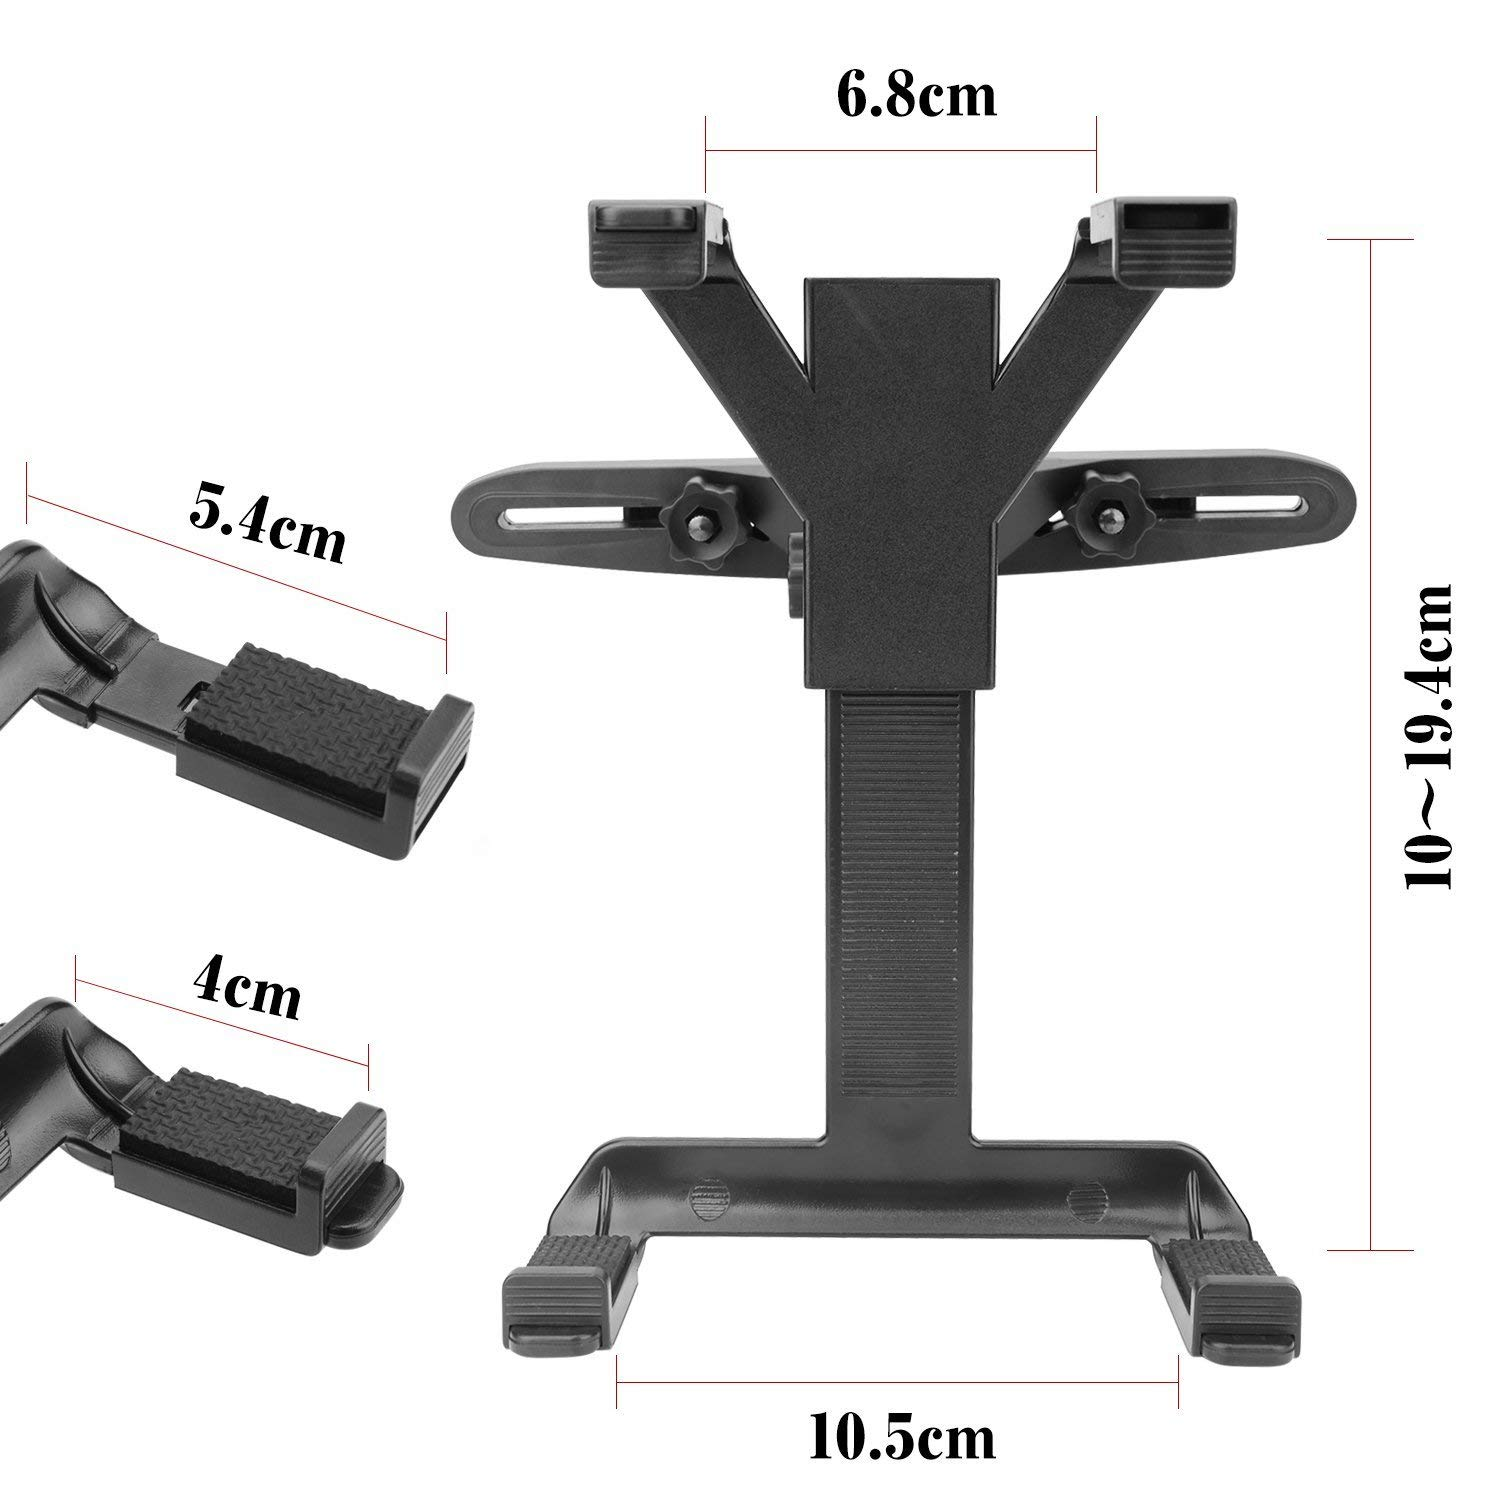 Car Headrest Mount, bedee Tablet Mount Adjustable Car Backseat Headrest Mount with 360 Degree Rotation, Universal for Portable DVD Player, Apple iPad Mini / iPad Air 2 / iPad Air / iPad 4 / iPad 3 / iPad 2 iPad Pro, Samsung Galaxy Tab, Kind